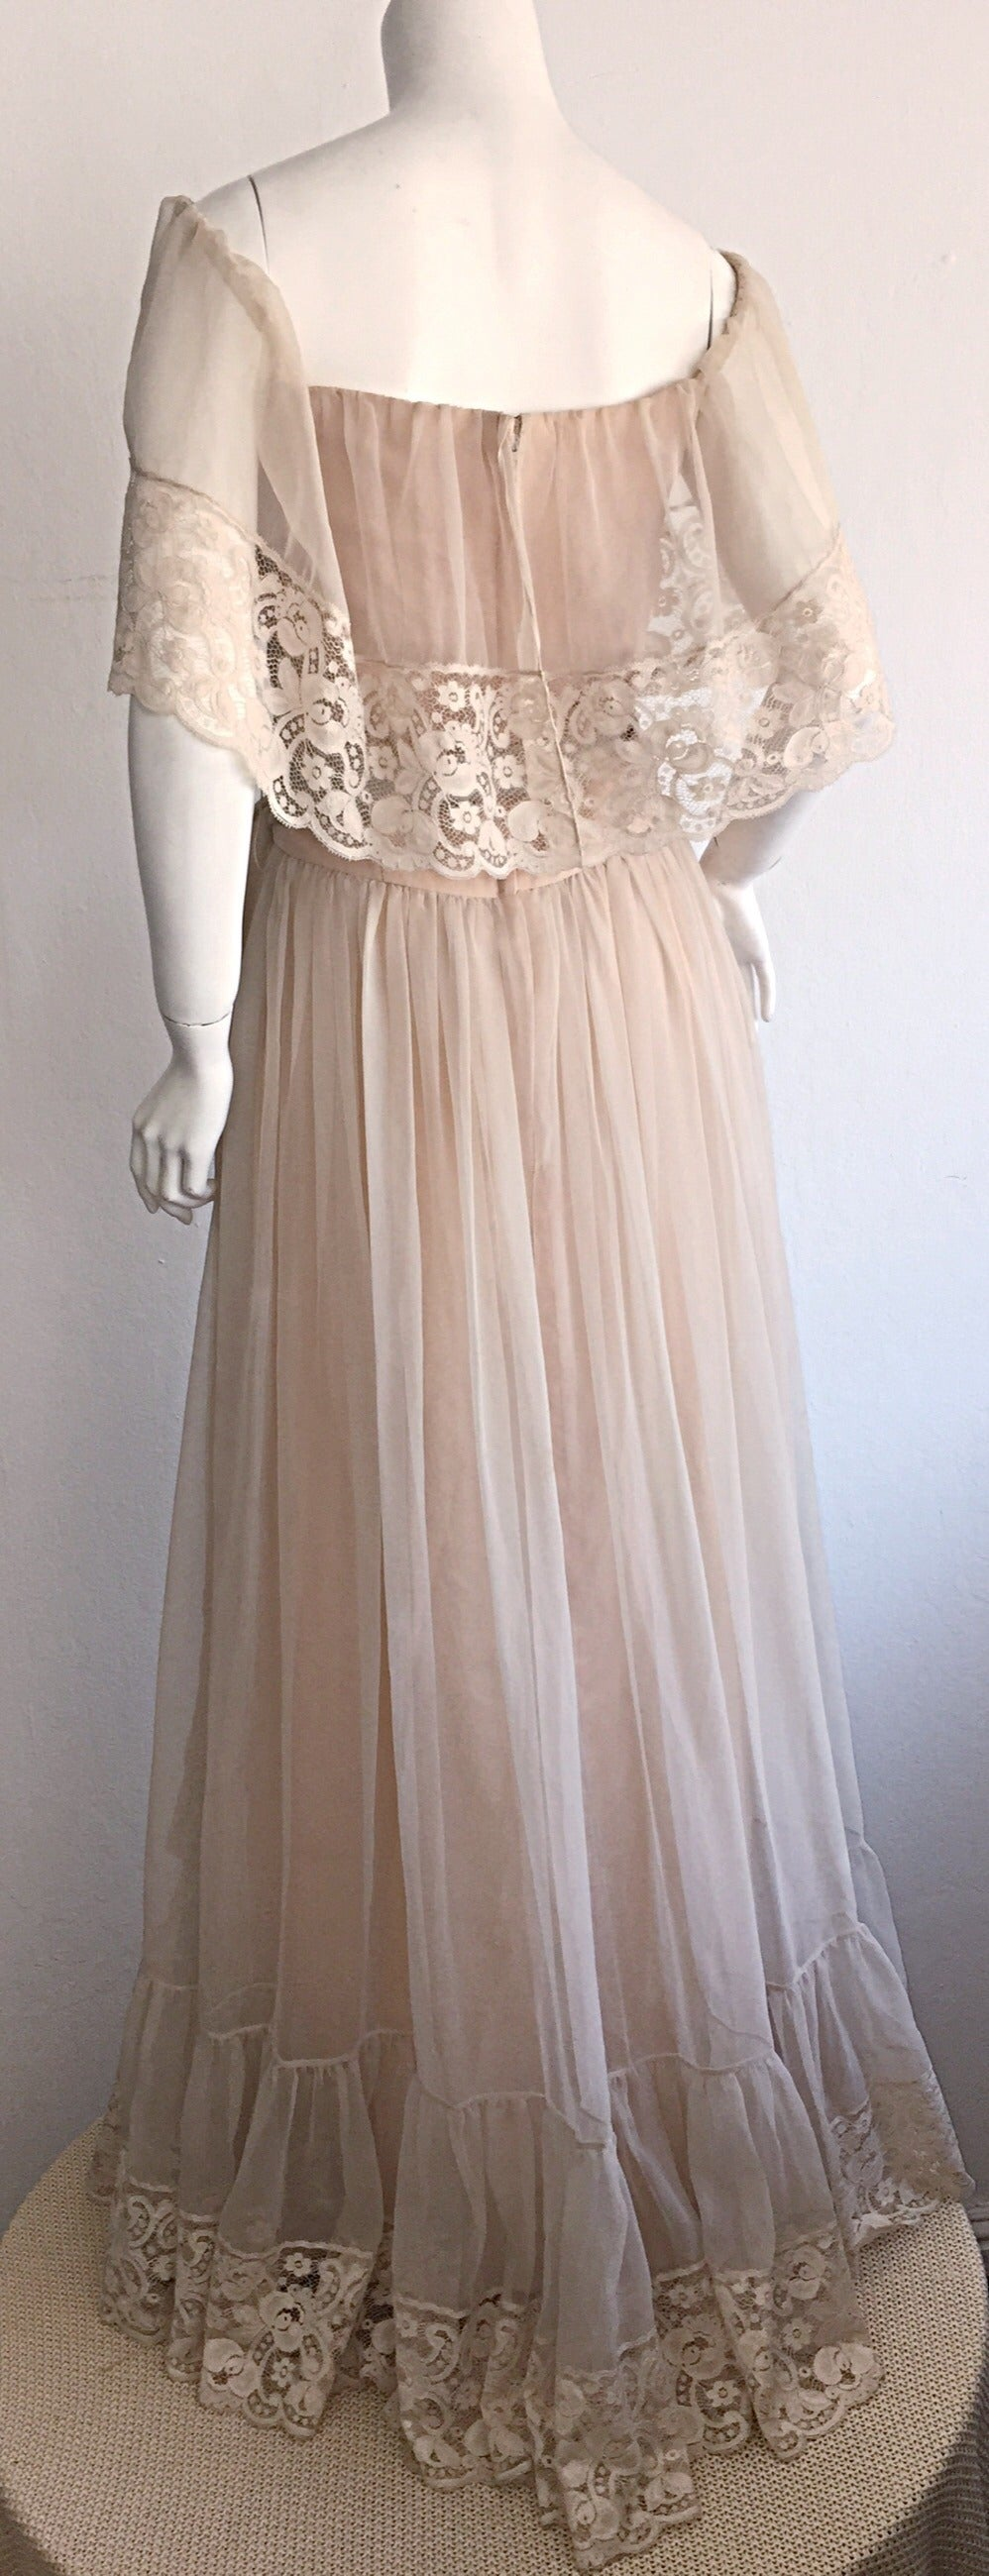 Beautiful Ethereal Vintage Victor Costa Cream Lace Bohemian Wedding Dress / Gown For Sale 1